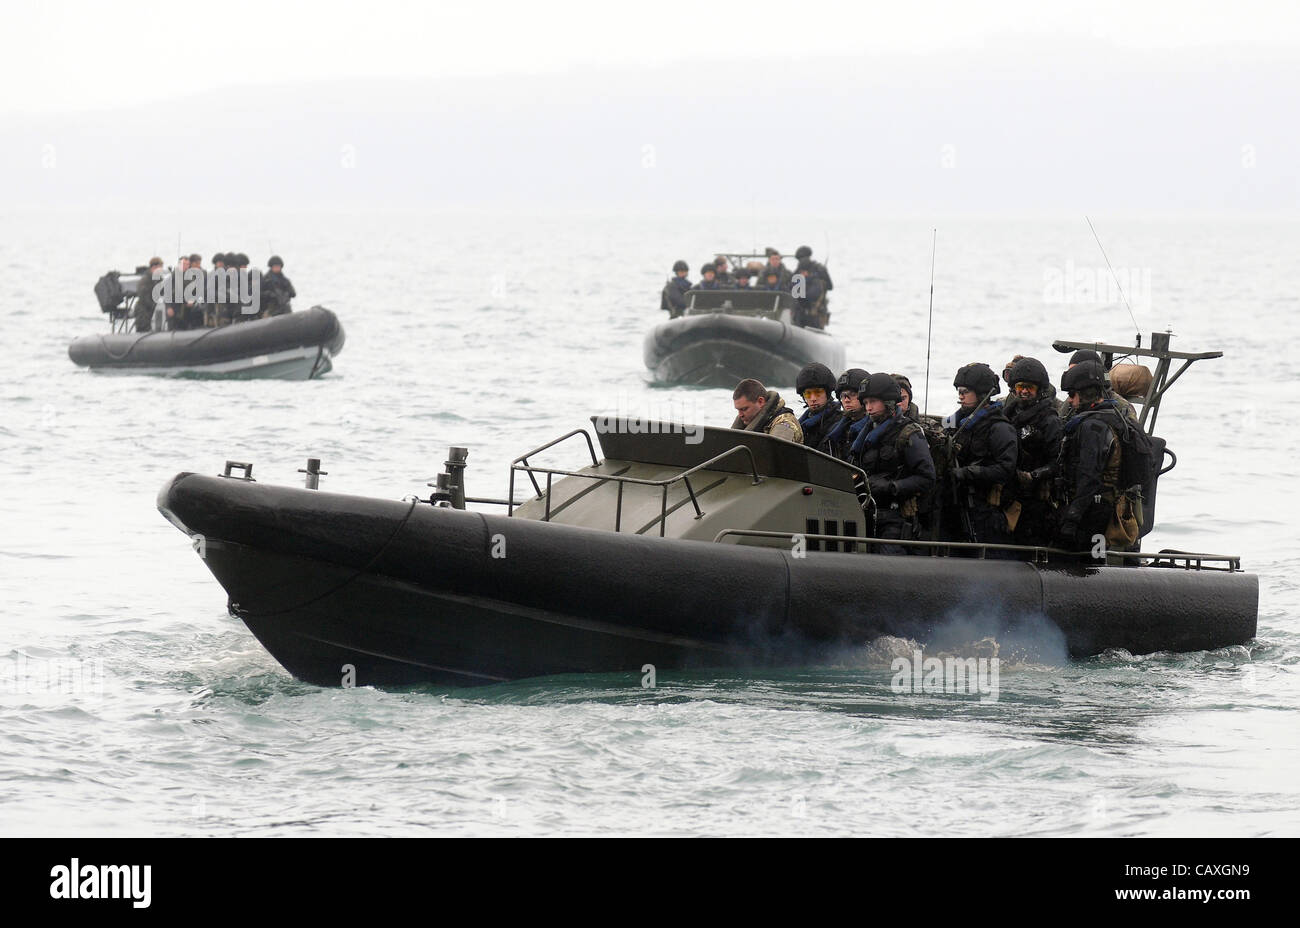 Royal Navy rapid response ribs, boat, speedboats carrying troops from HMS Bulwark - Stock Image